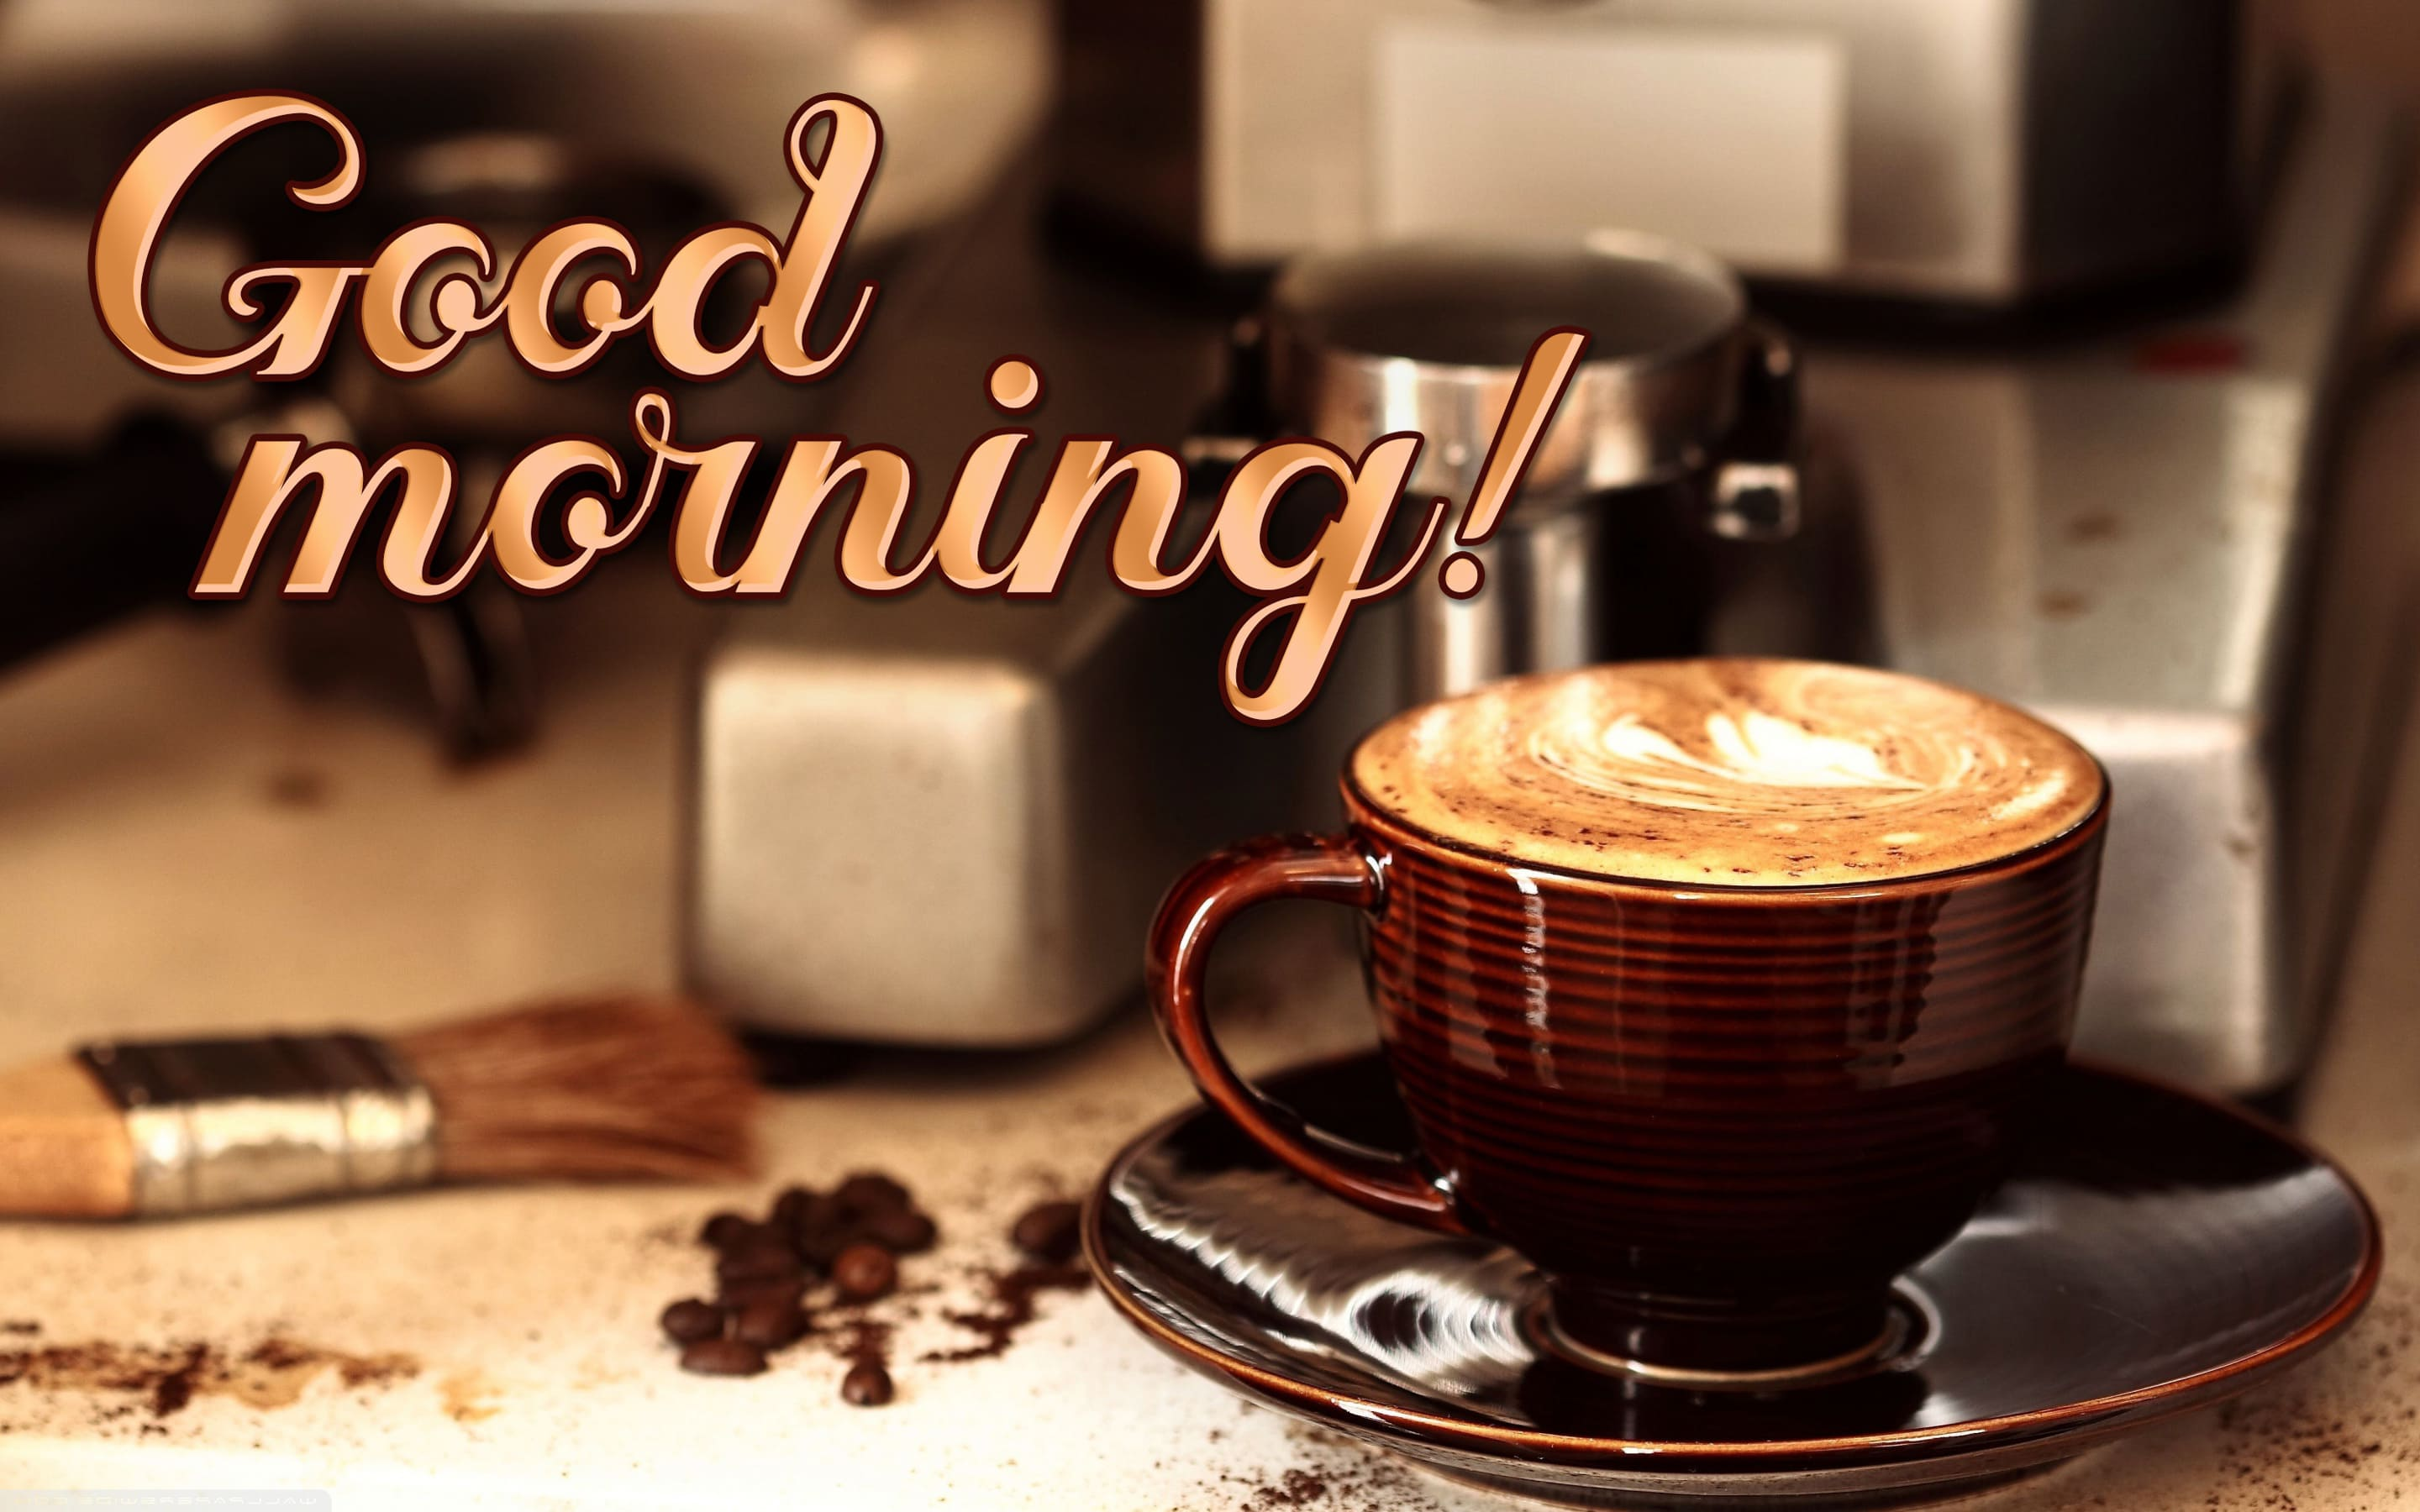 Good Morning Wishes Collection